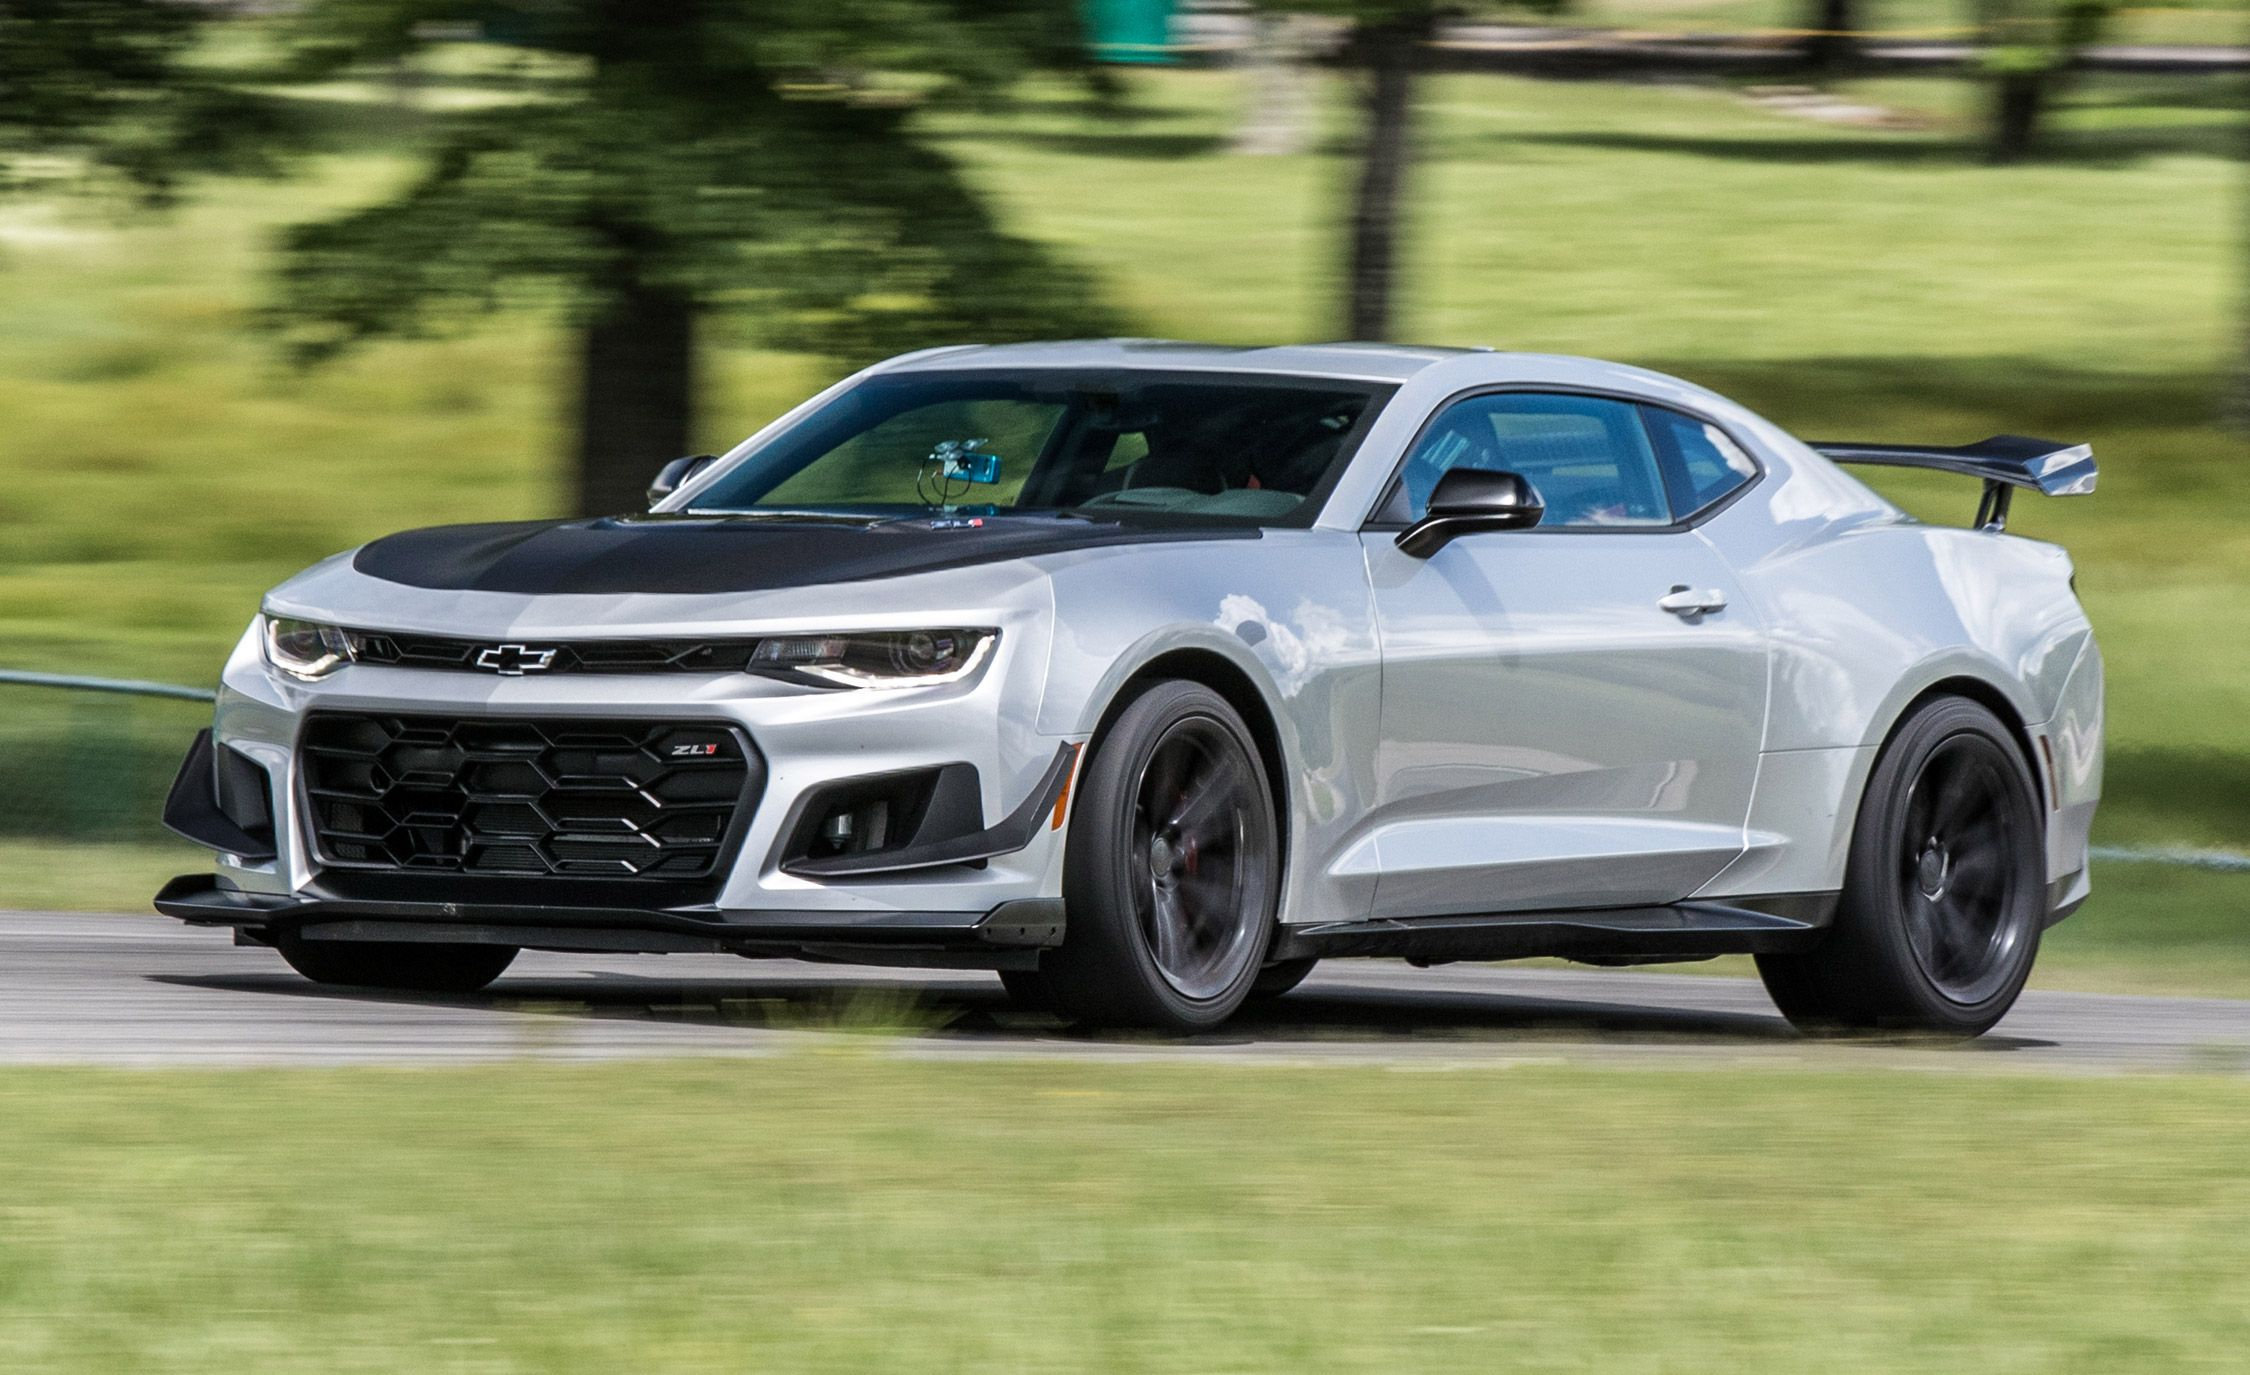 Chevrolet Camaro ZL1 1LE at Lightning Lap 2017 | Feature ...